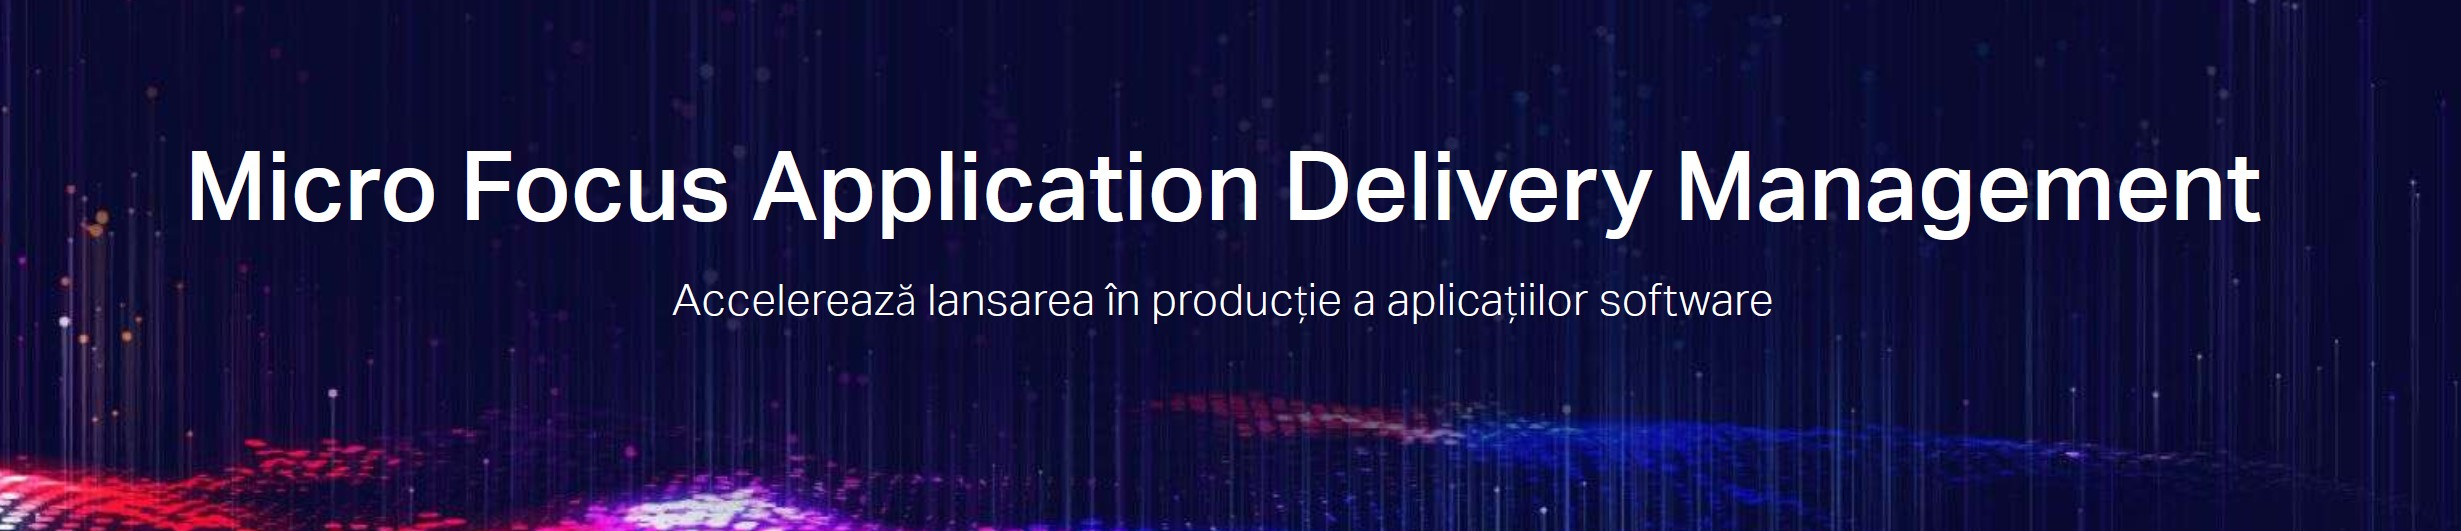 Micro Focus Application Delivery Management (ADM)